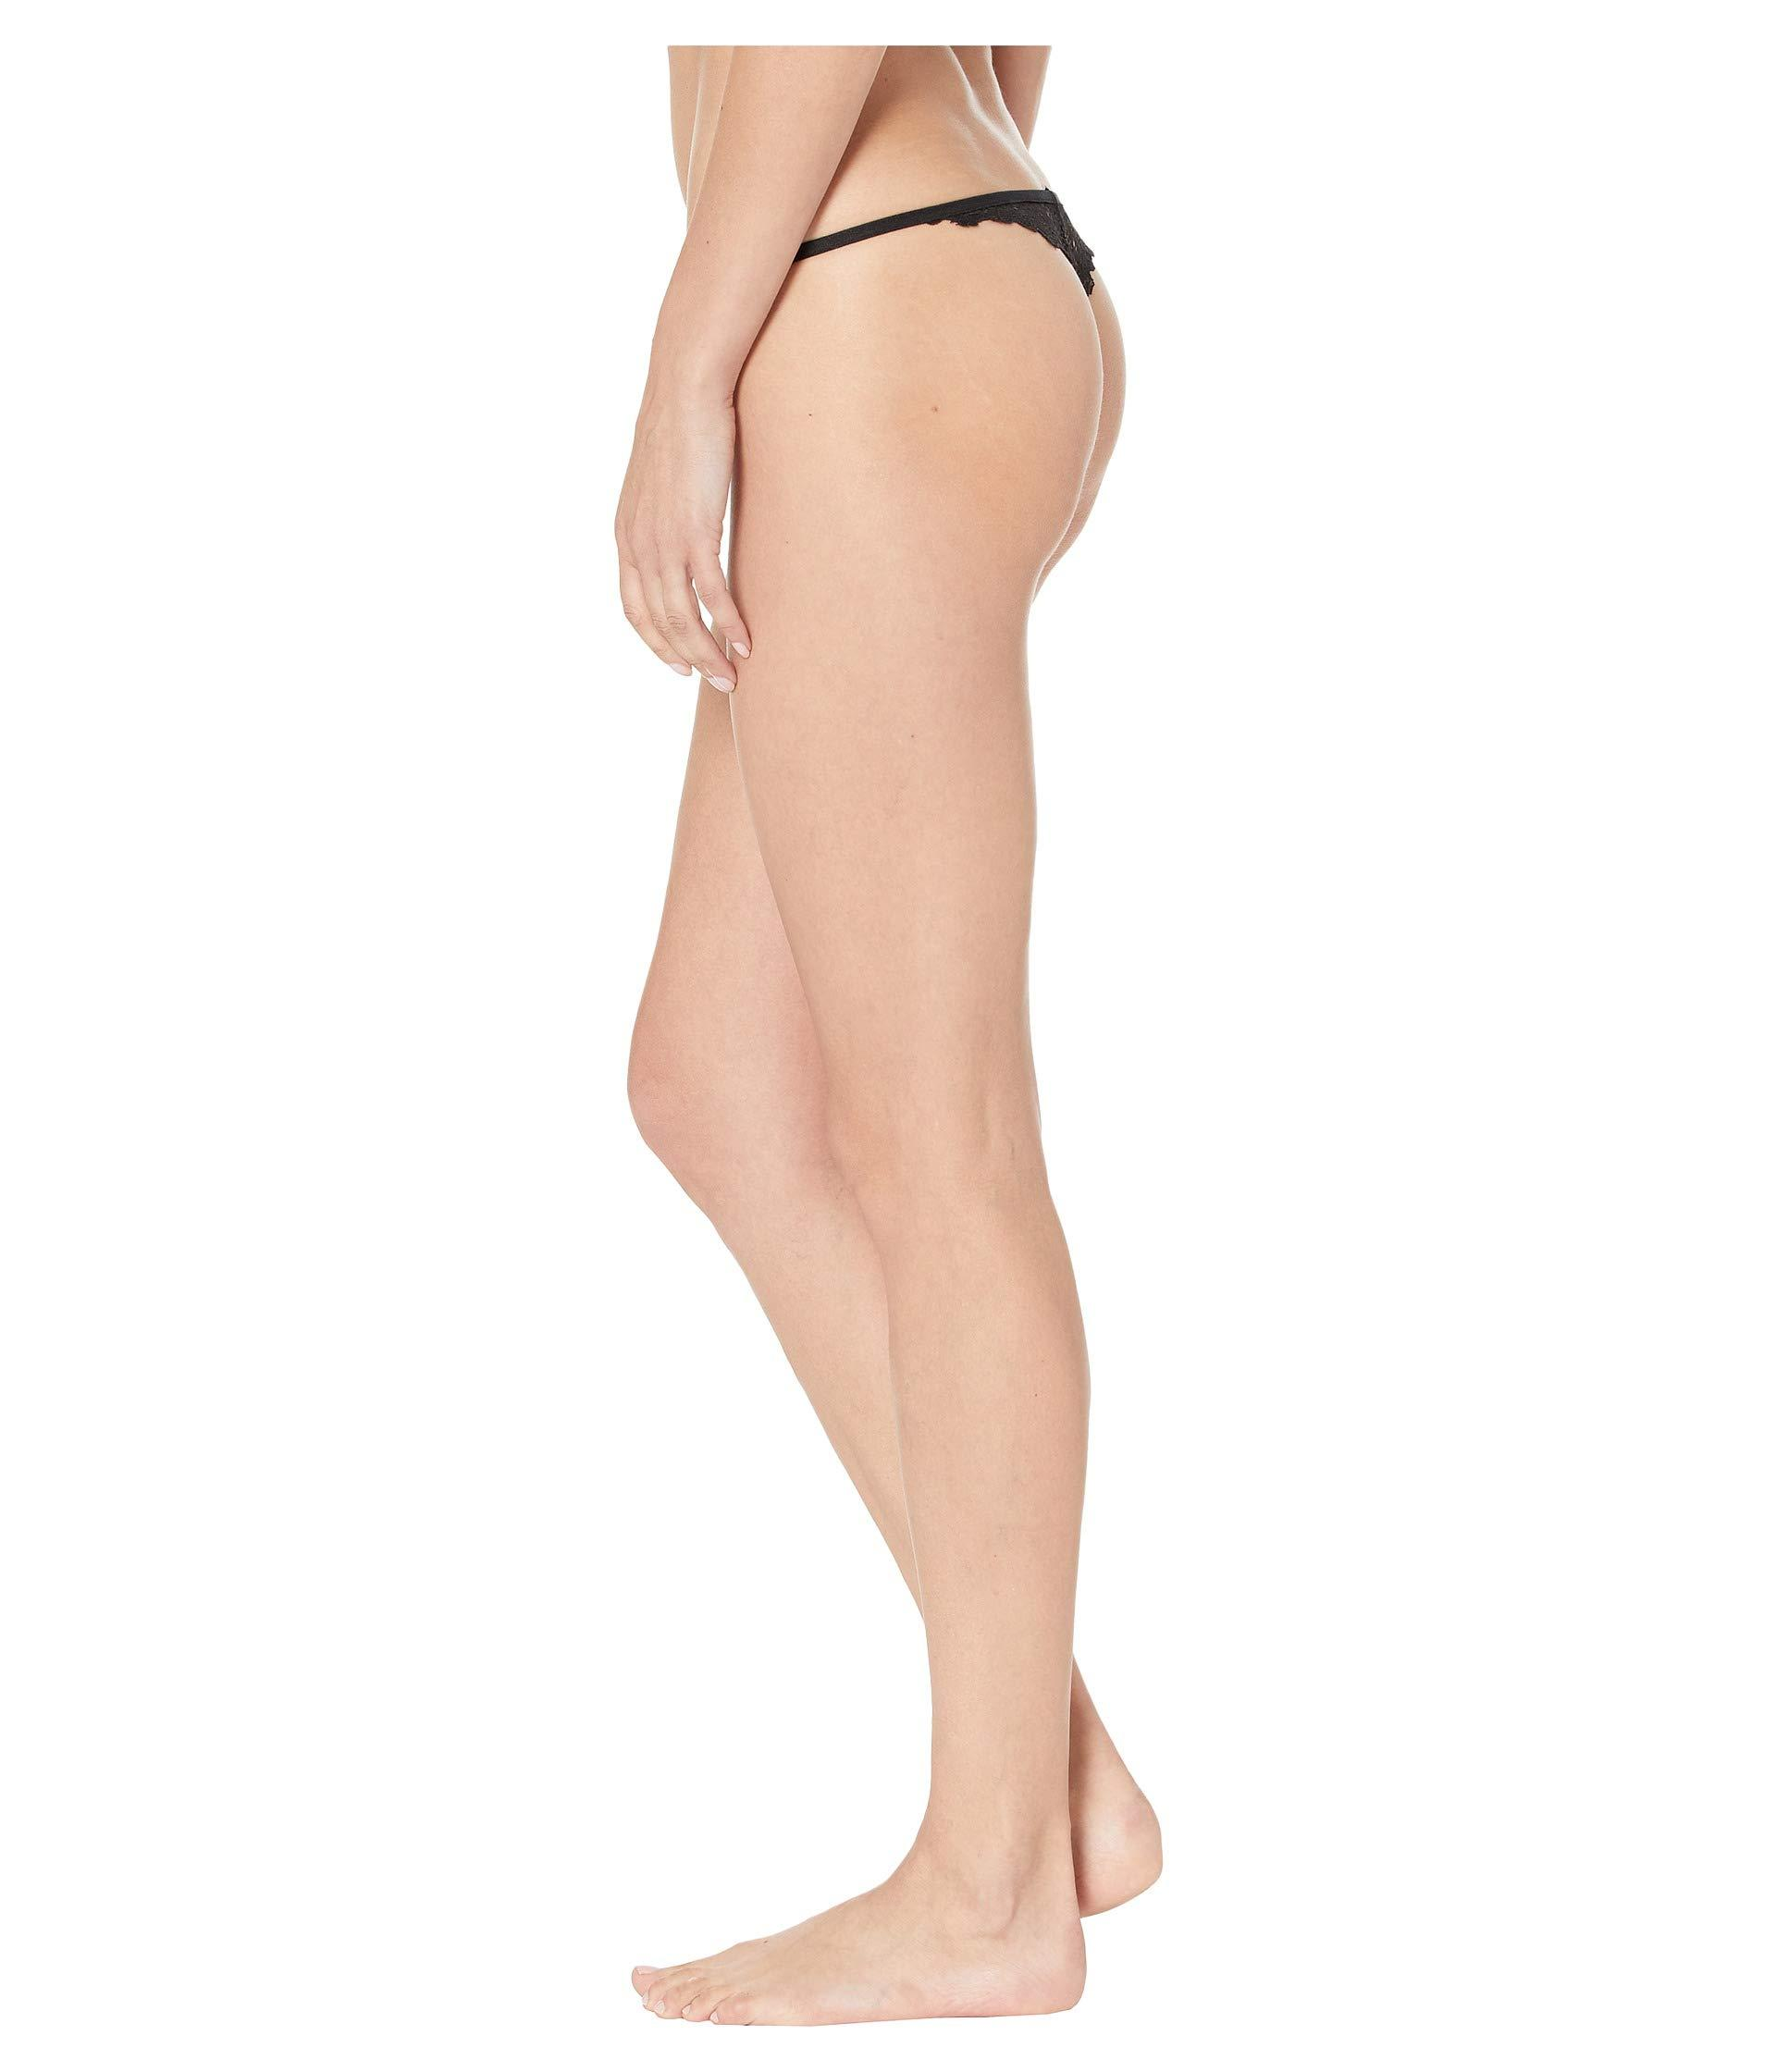 fa0ec5db6c76 Only Hearts - Whisper Sweet Nothings Barely There G-string (black) Women's  Underwear. View fullscreen